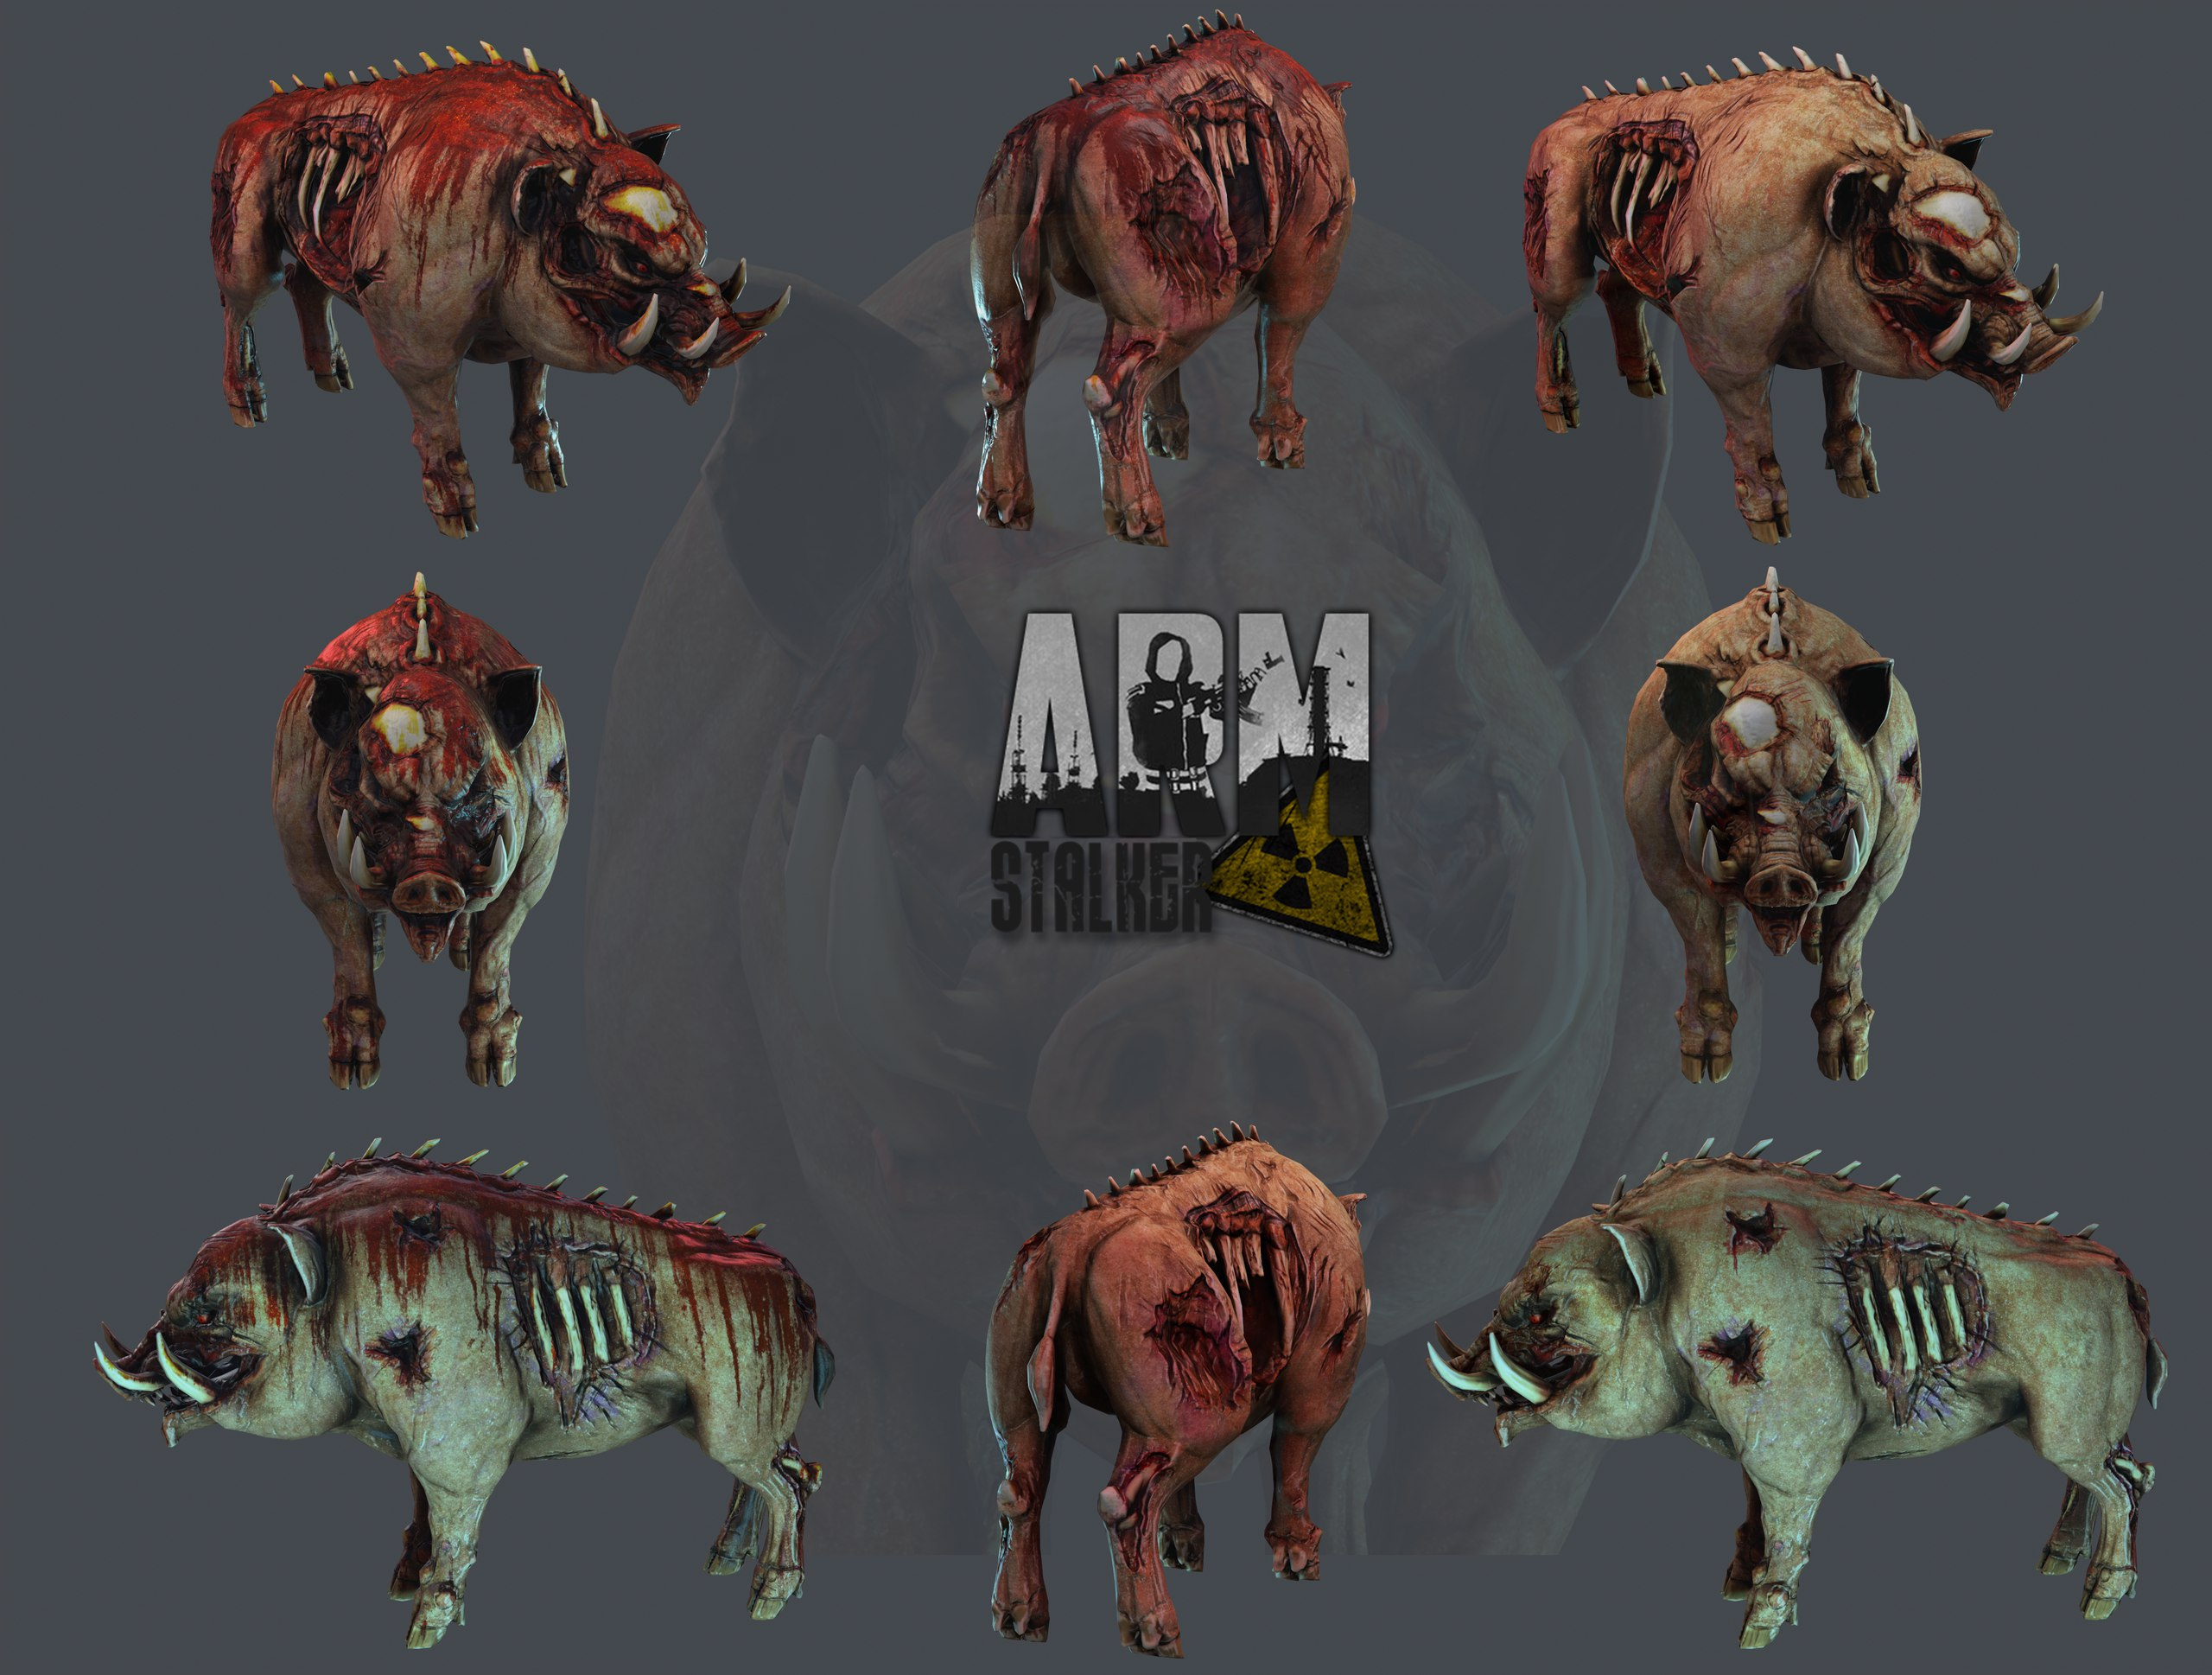 Walk In The Dark A Glimpse Into The Armstalker Rp Server as well Forums as well New Boar Variant Wip Shown 172016 furthermore Index additionally Armstalker Online April 2015. on armstalker forums